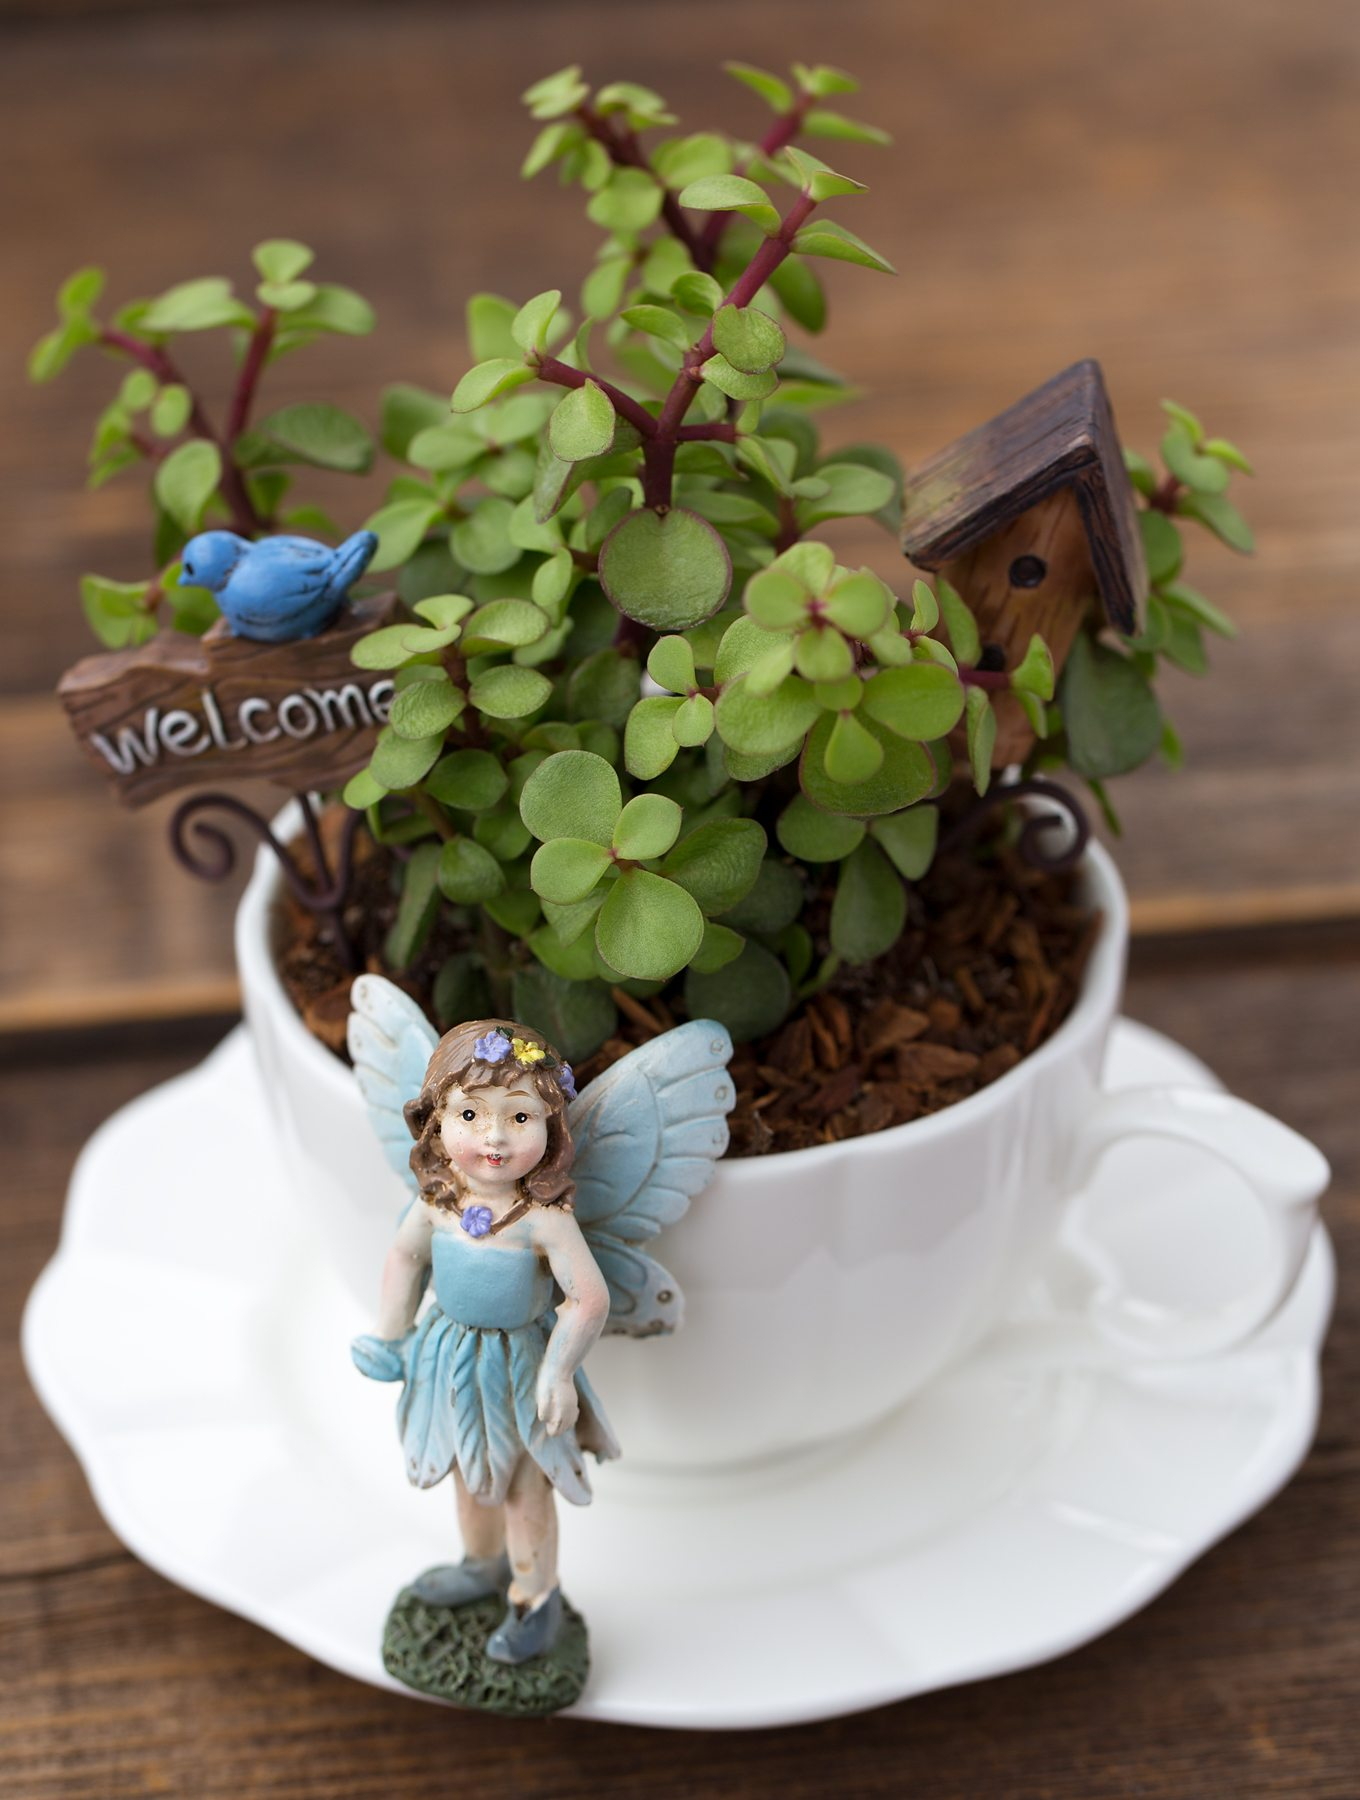 Splendid How To Make A Teacup Fairy Garden 1 Early Learning Centre Fairy Garden Instructions Shrinky Dinks Fairy Garden Instructions garden Fairy Garden Instructions